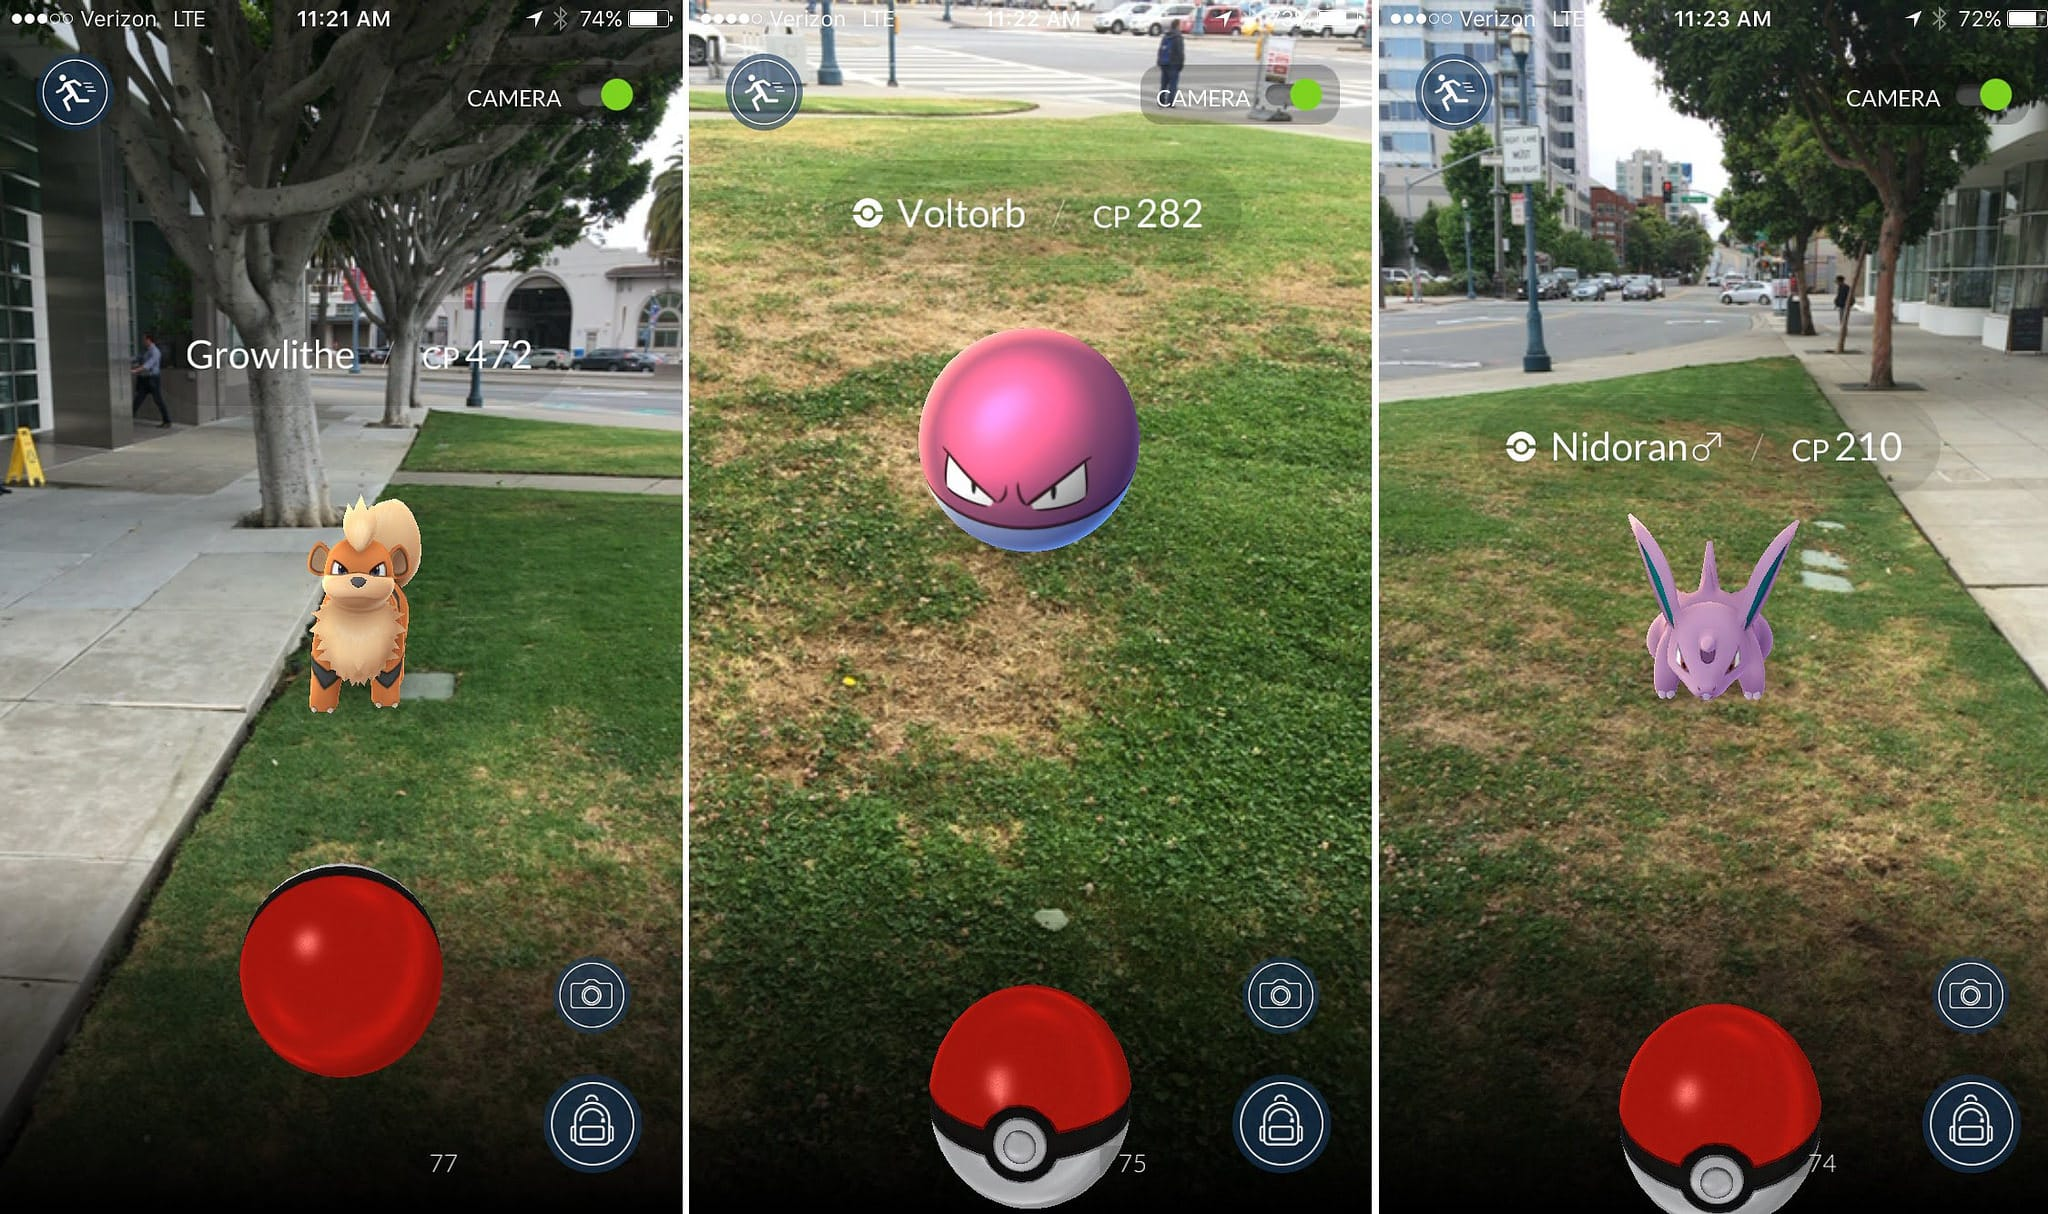 Augmented Reality in Pokémon GO